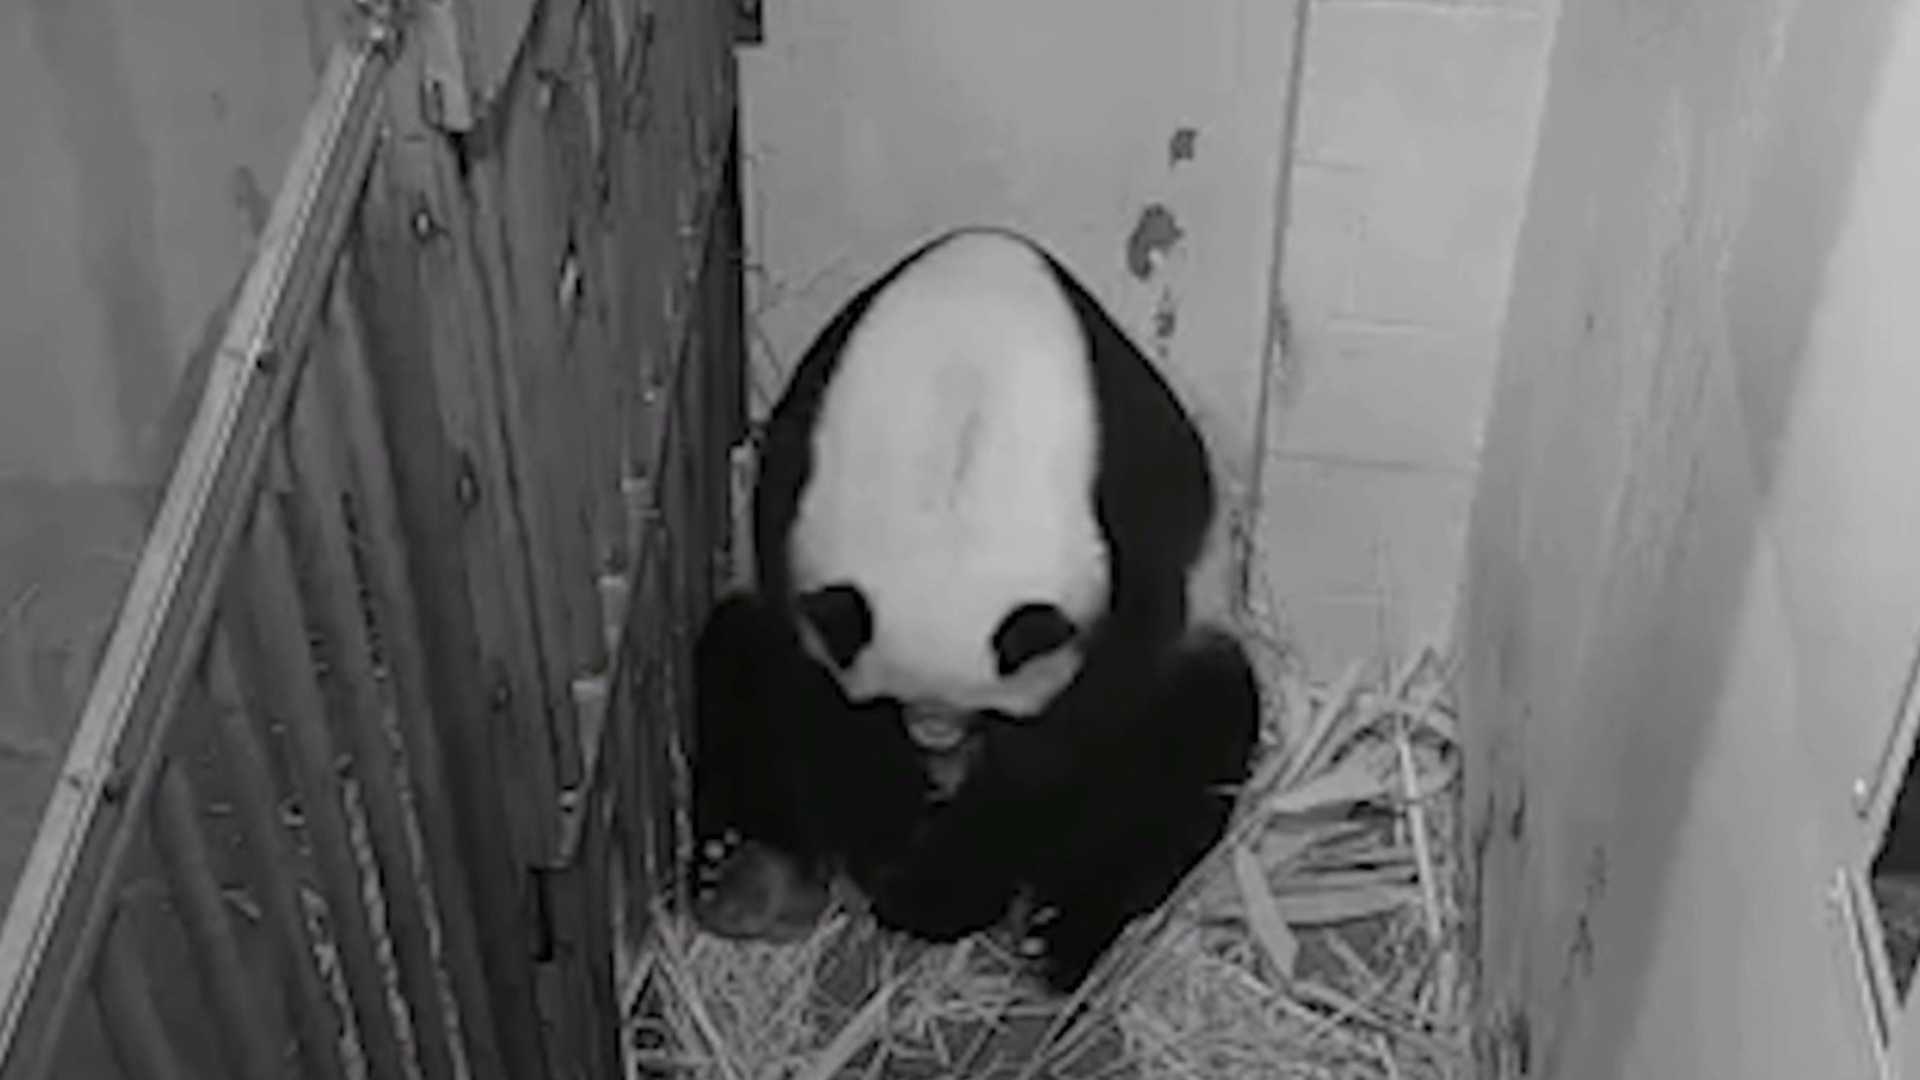 Watch Cbs Evening News Giant Panda Gives Birth At National Zoo Full Show On Cbs All Access